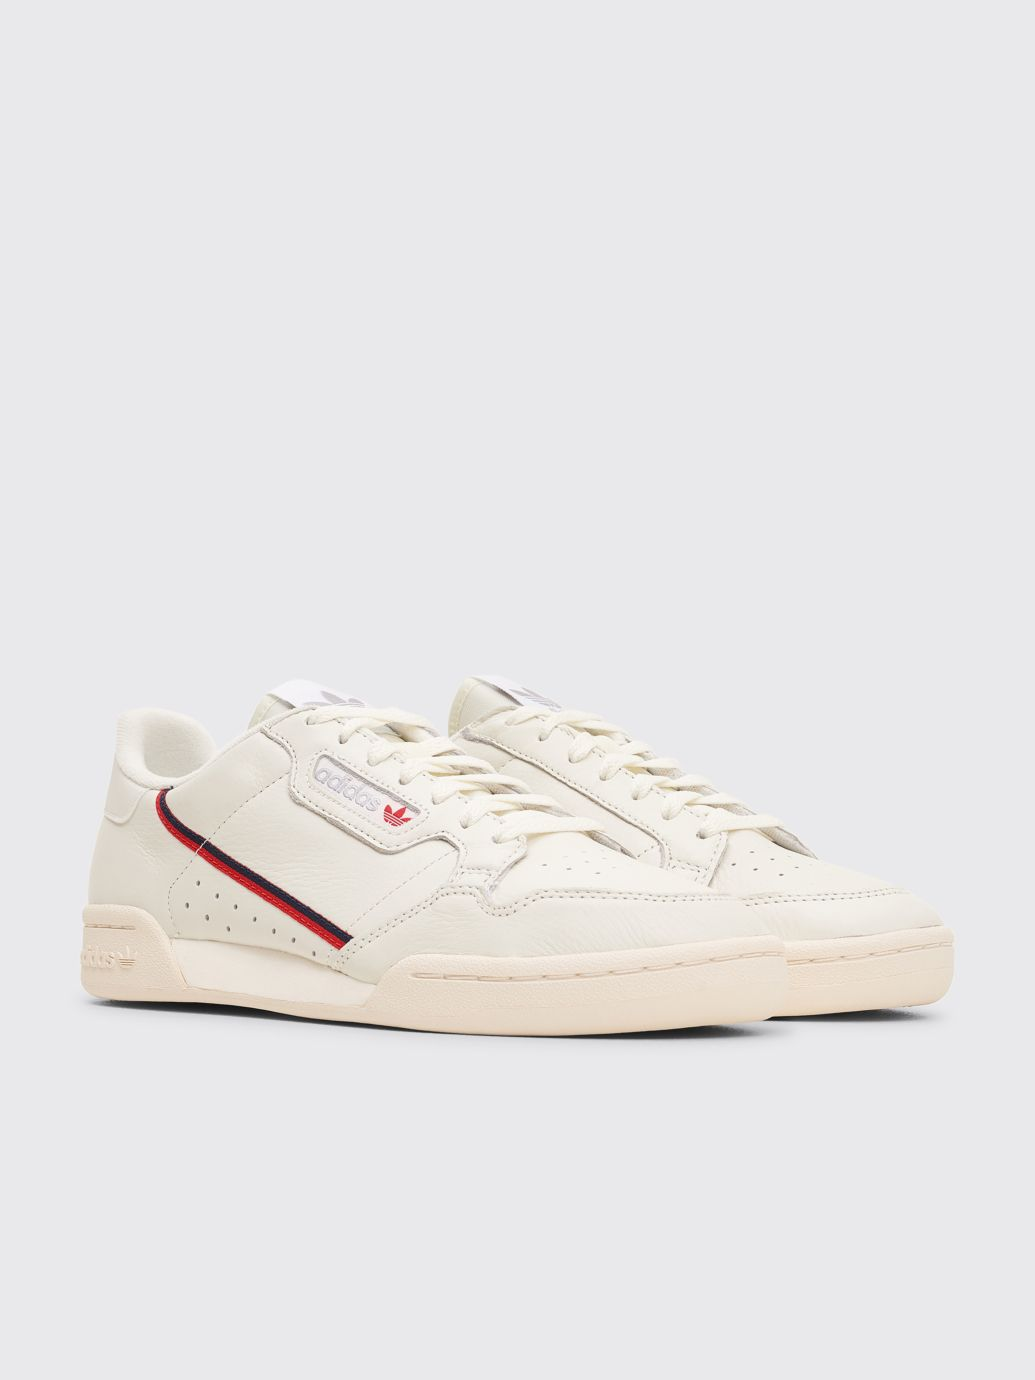 Tres Bien Adidas Originals Continental 80 Rascal White Tint Off White Scarlet Leather Heels Adidas Sports Brands